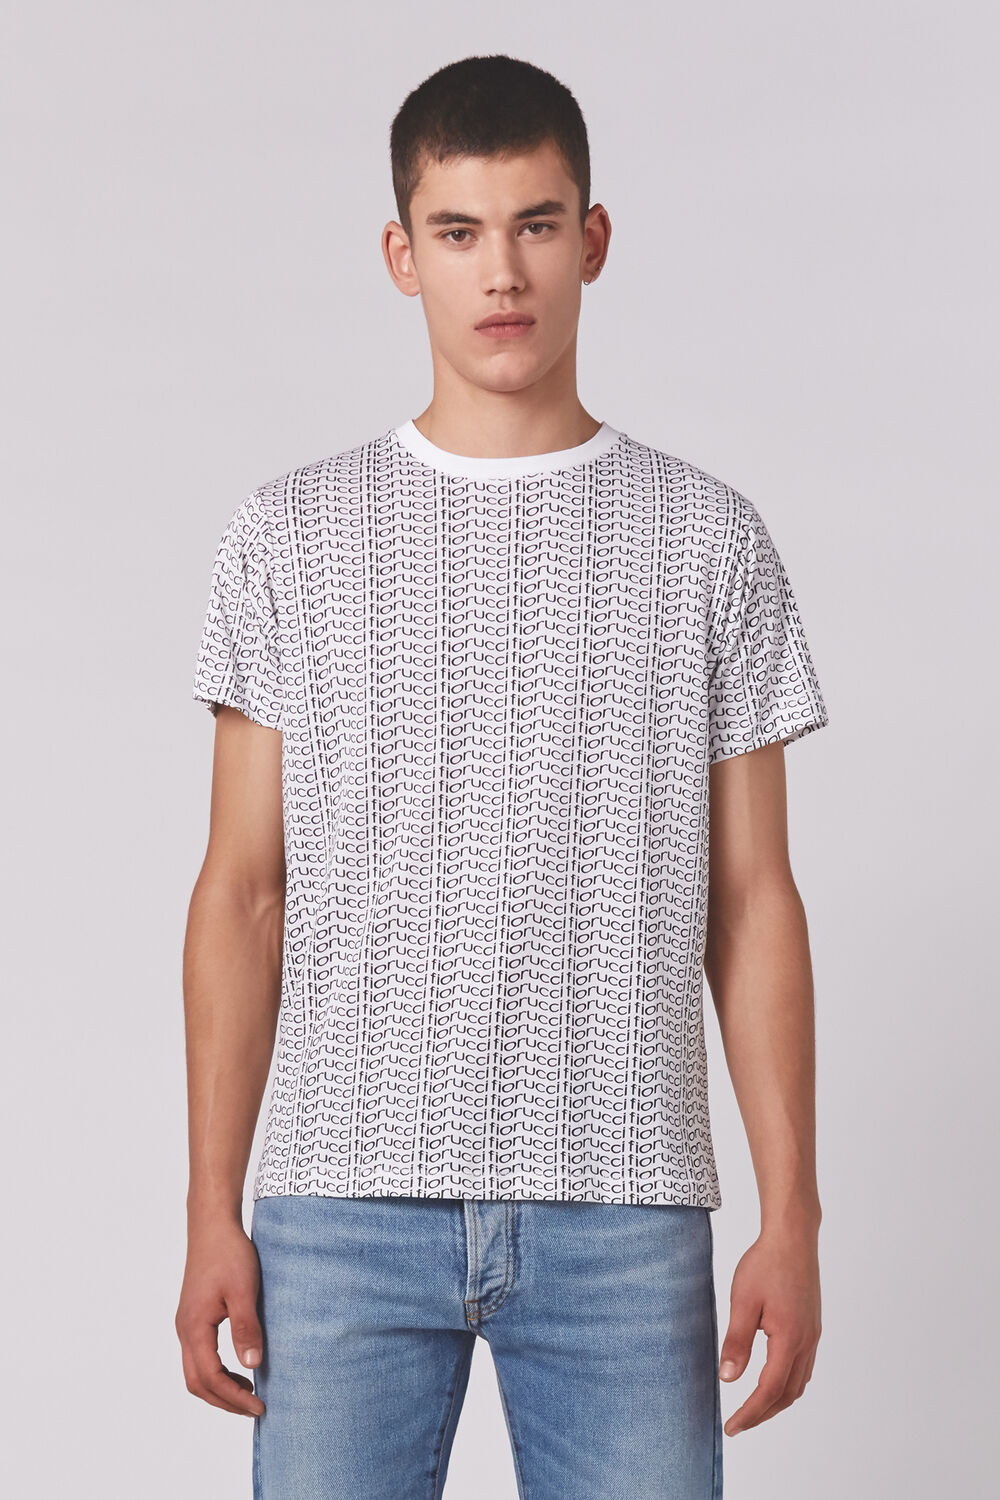 Classic Wavey All Over T-Shirt